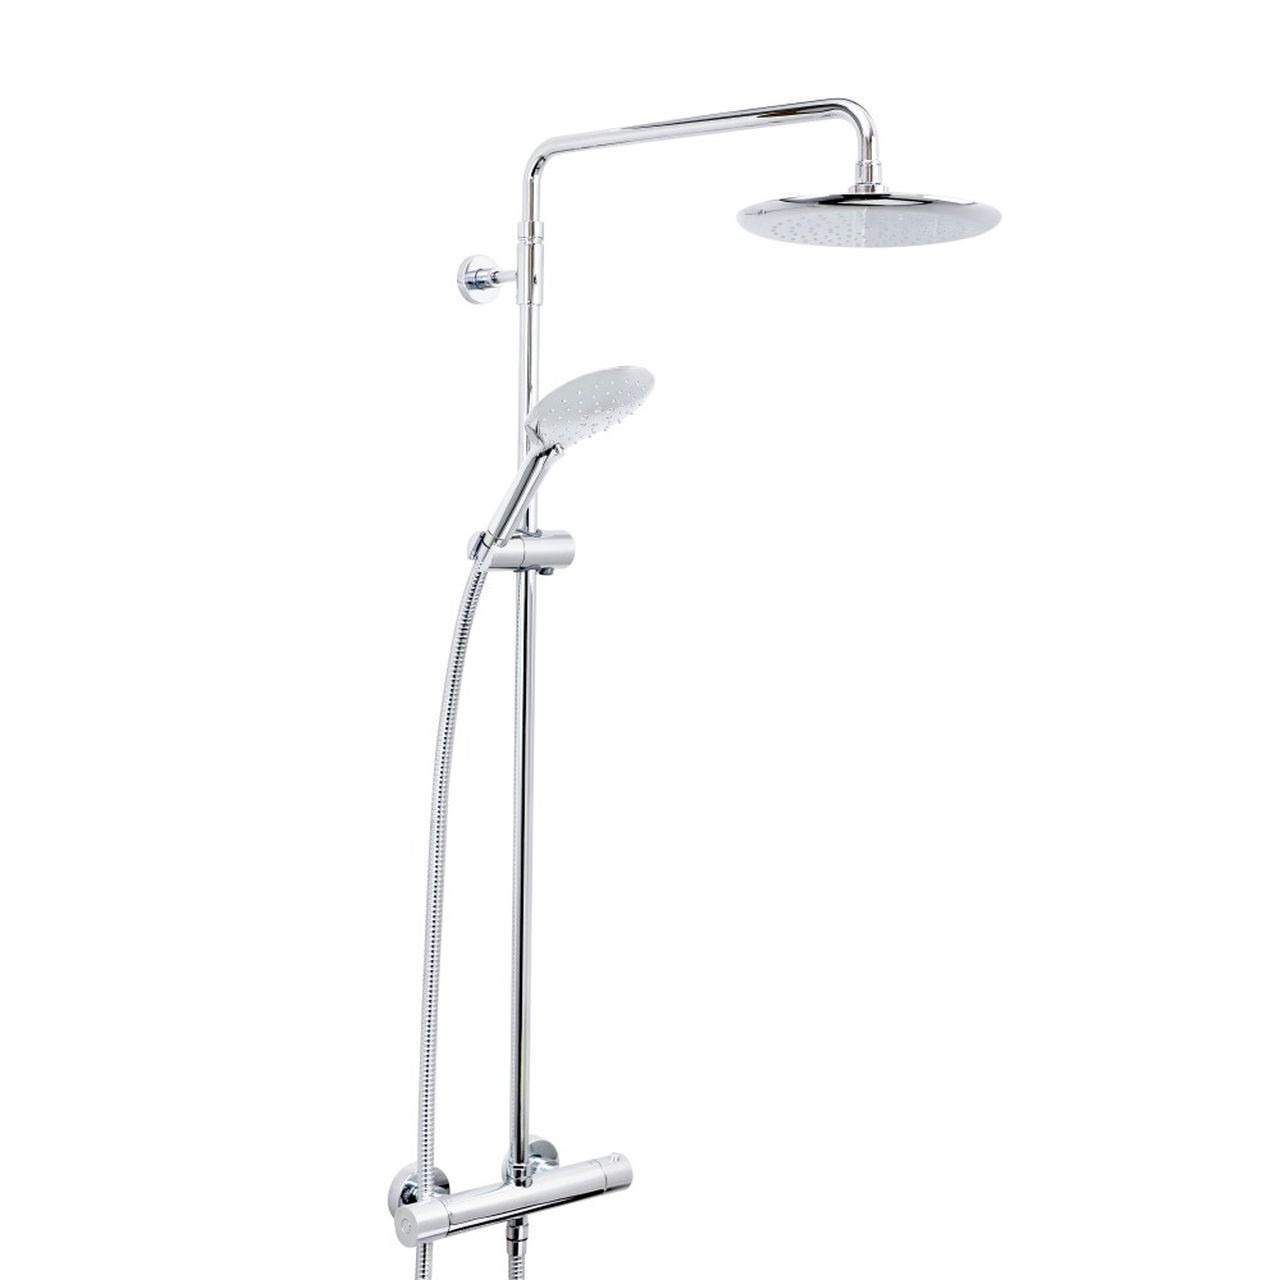 Bristan Carre Chrome Thermostatic Bar Shower Mixer With Rigid Riser Kit And Fast Fit Connections Cr Shxdivff C